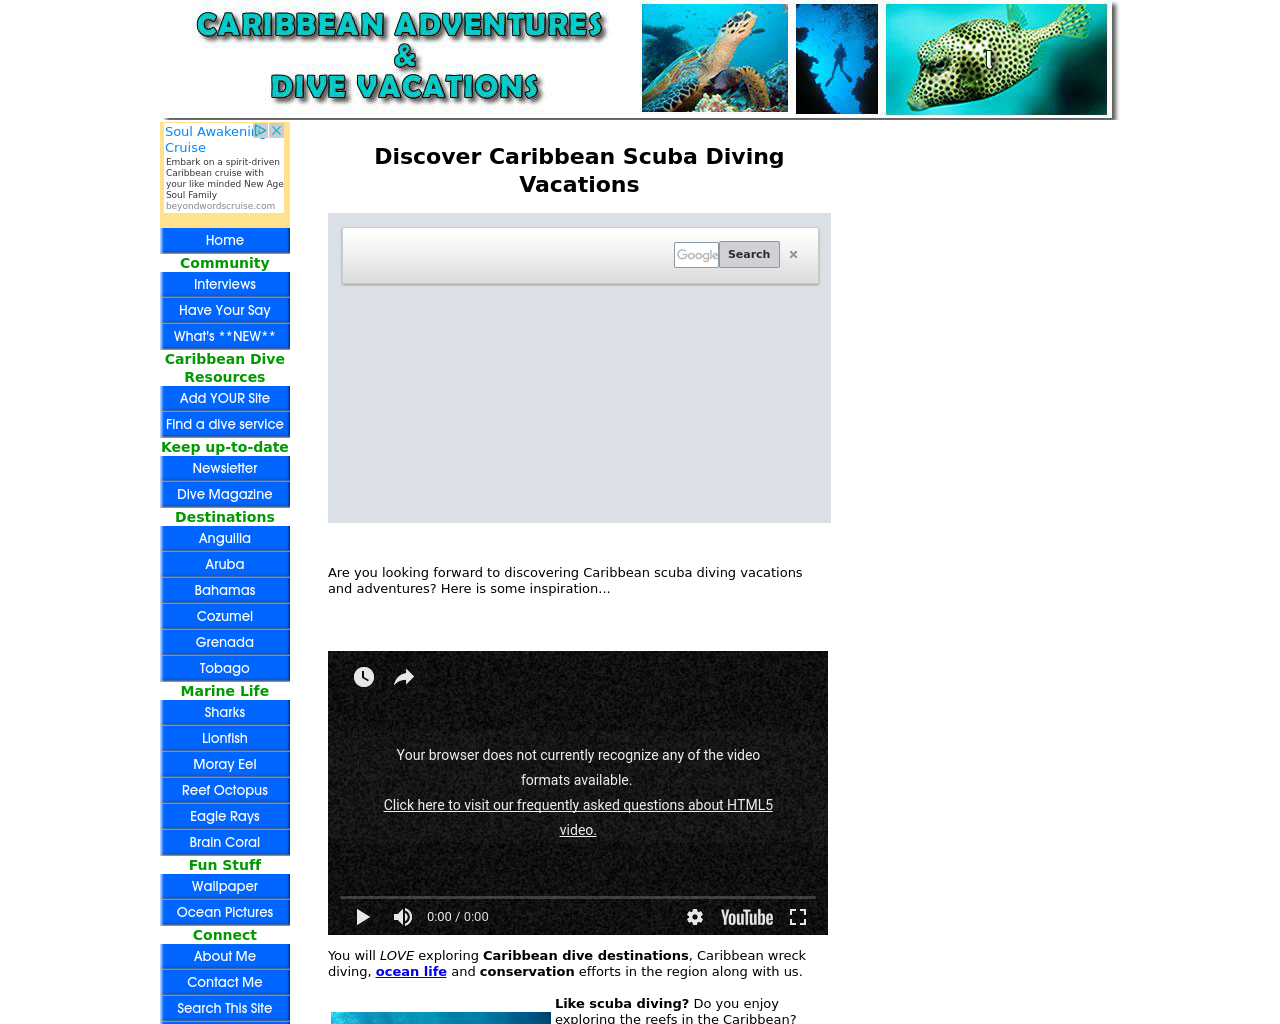 Caribbean-Adventures-&-Dive-Vacations-Advertising-Reviews-Pricing